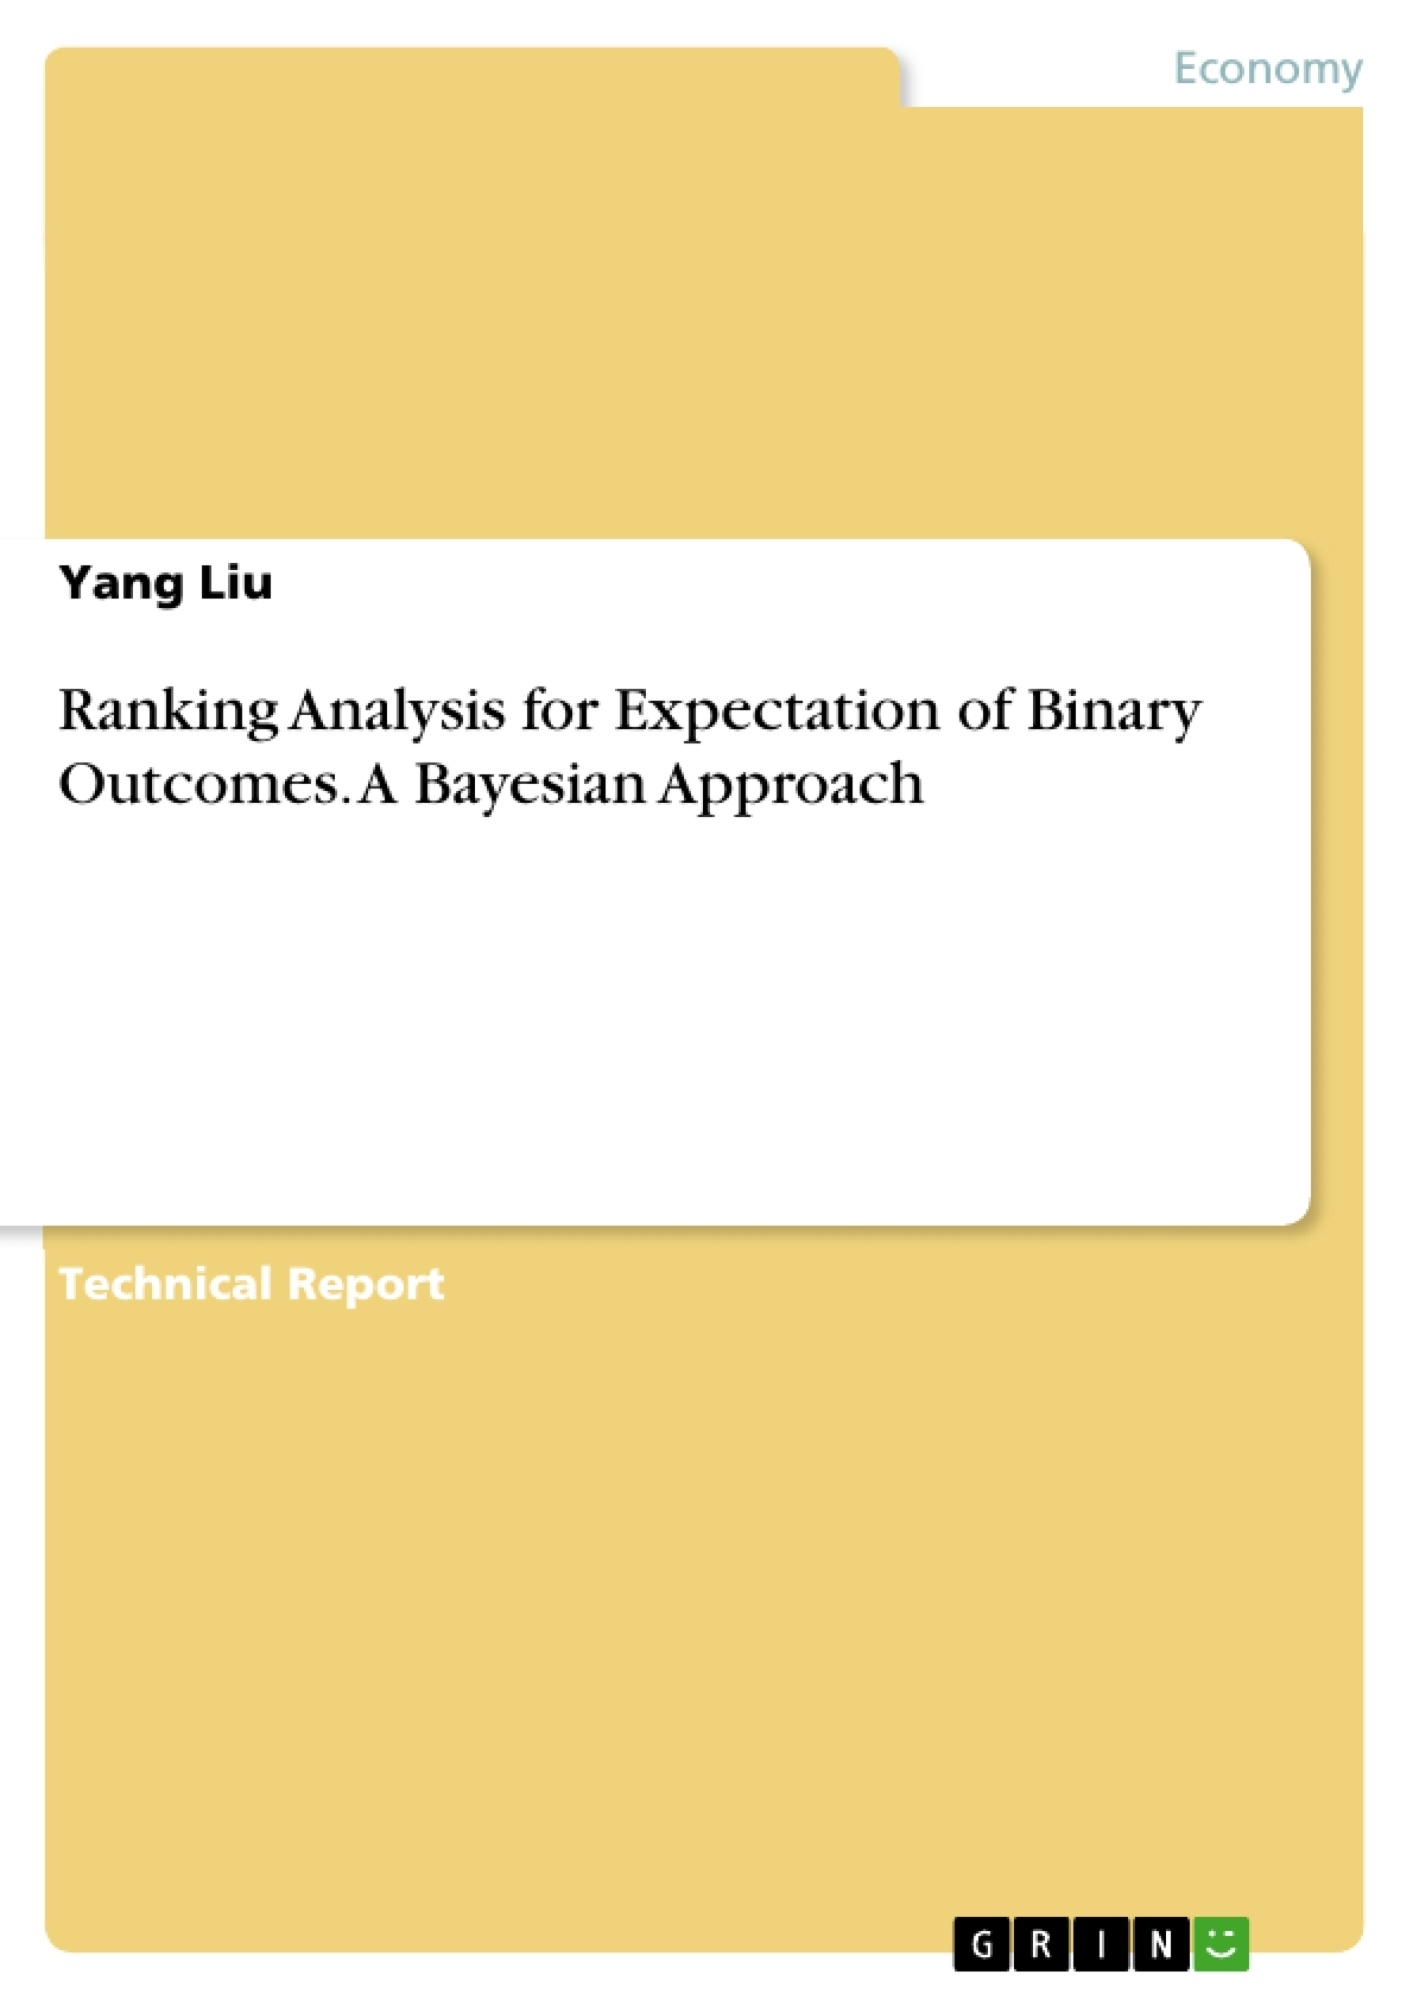 Title: Ranking Analysis for Expectation of Binary Outcomes. A Bayesian Approach